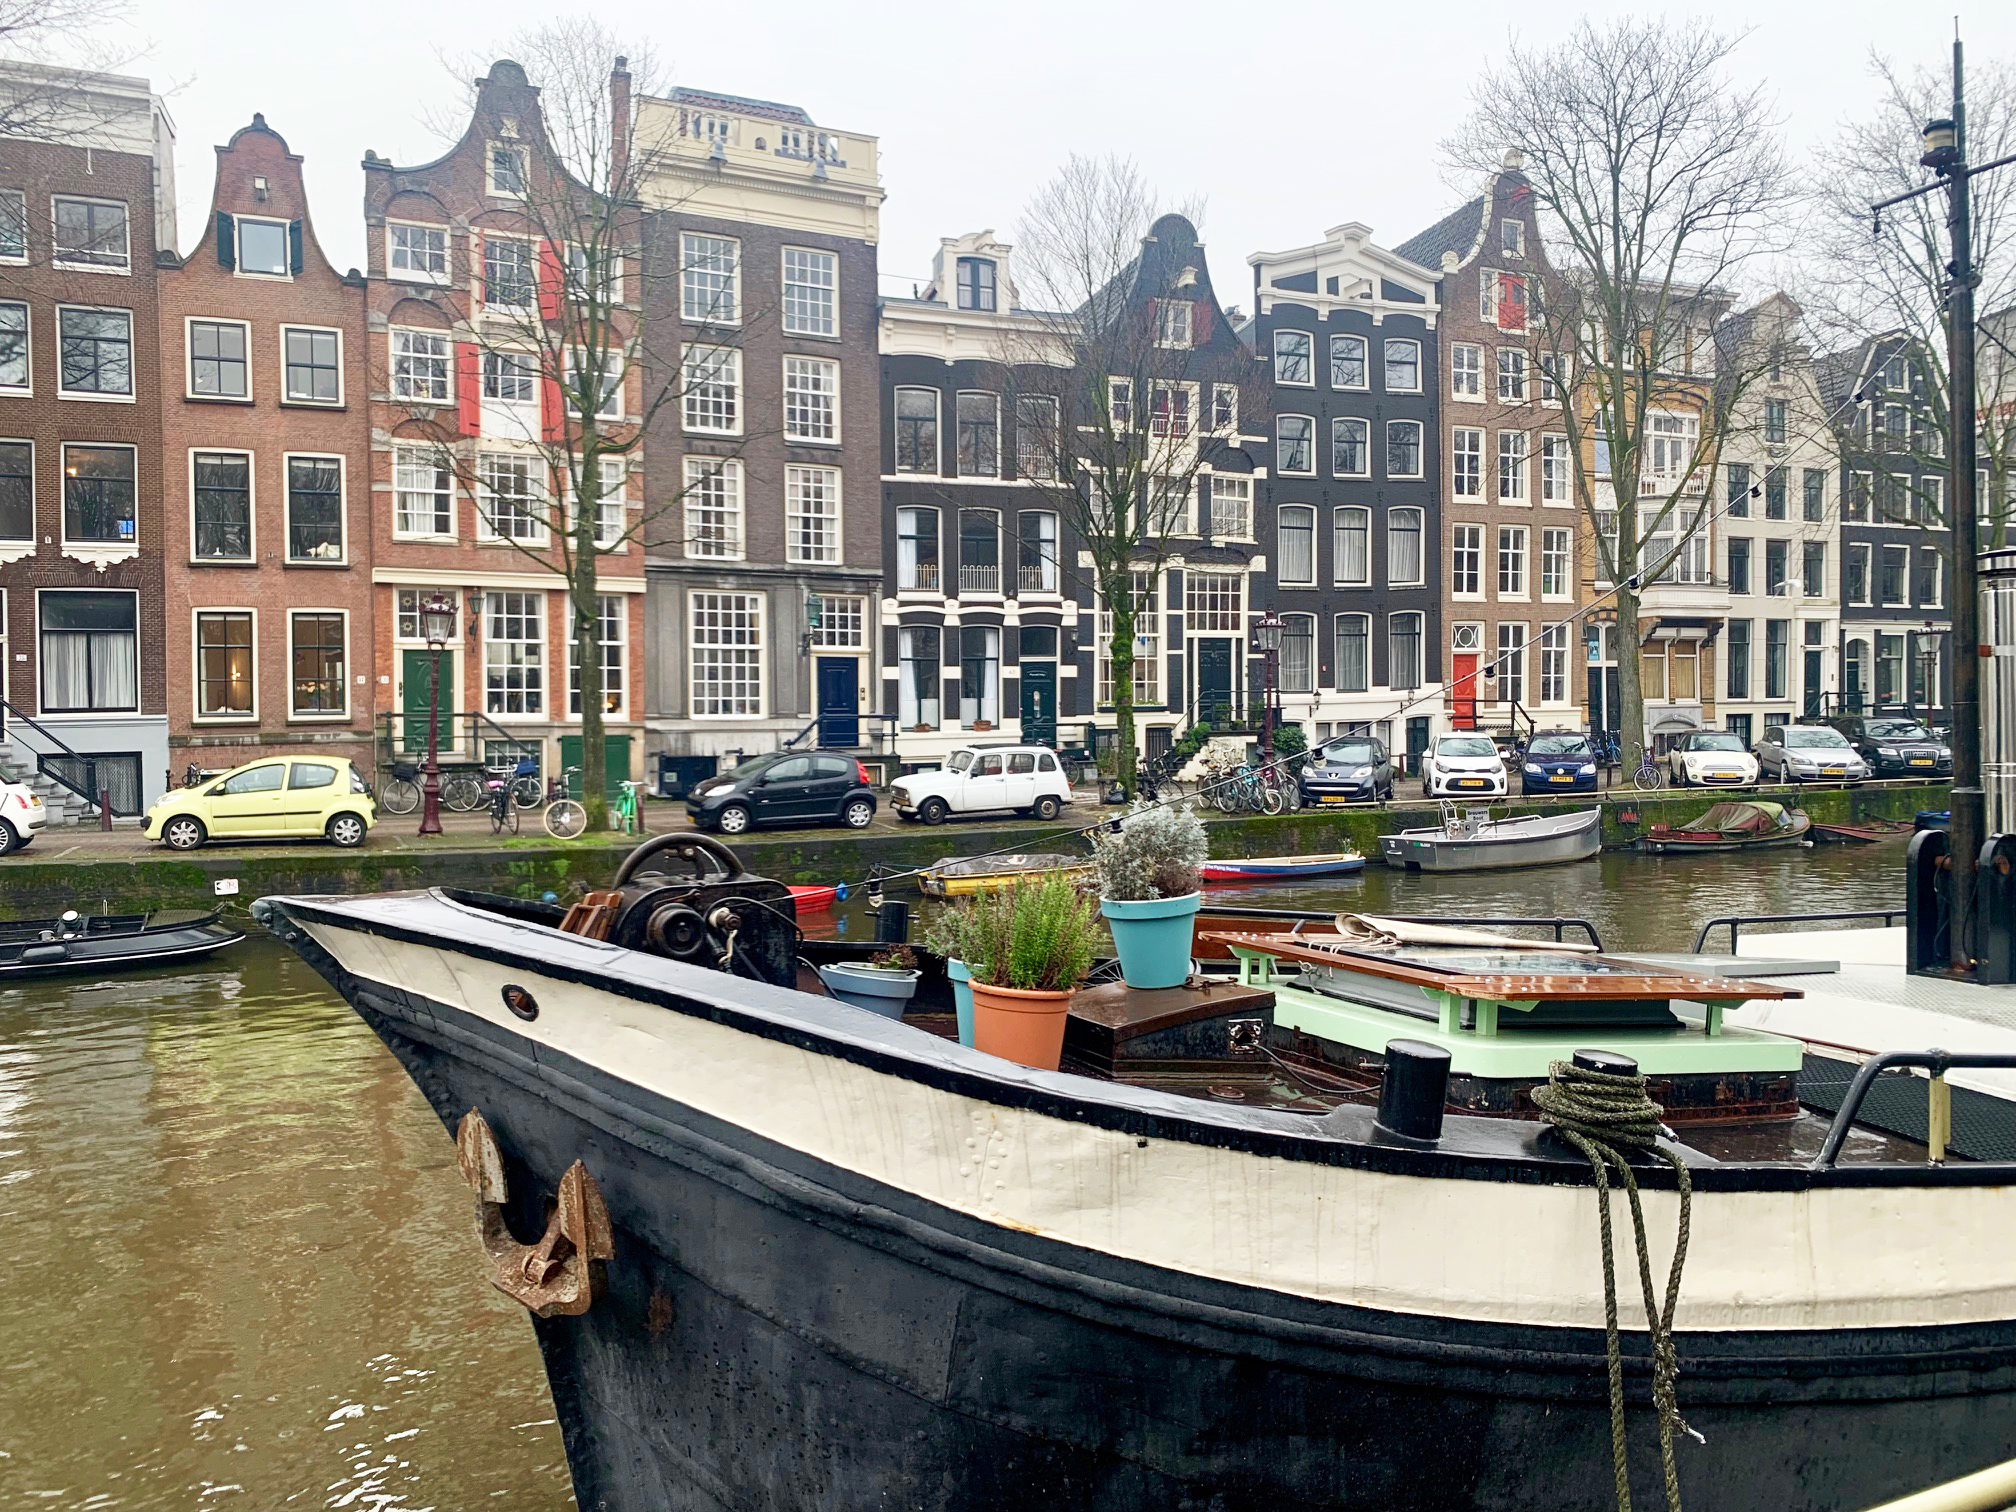 A typical canalside view in Amsterdam